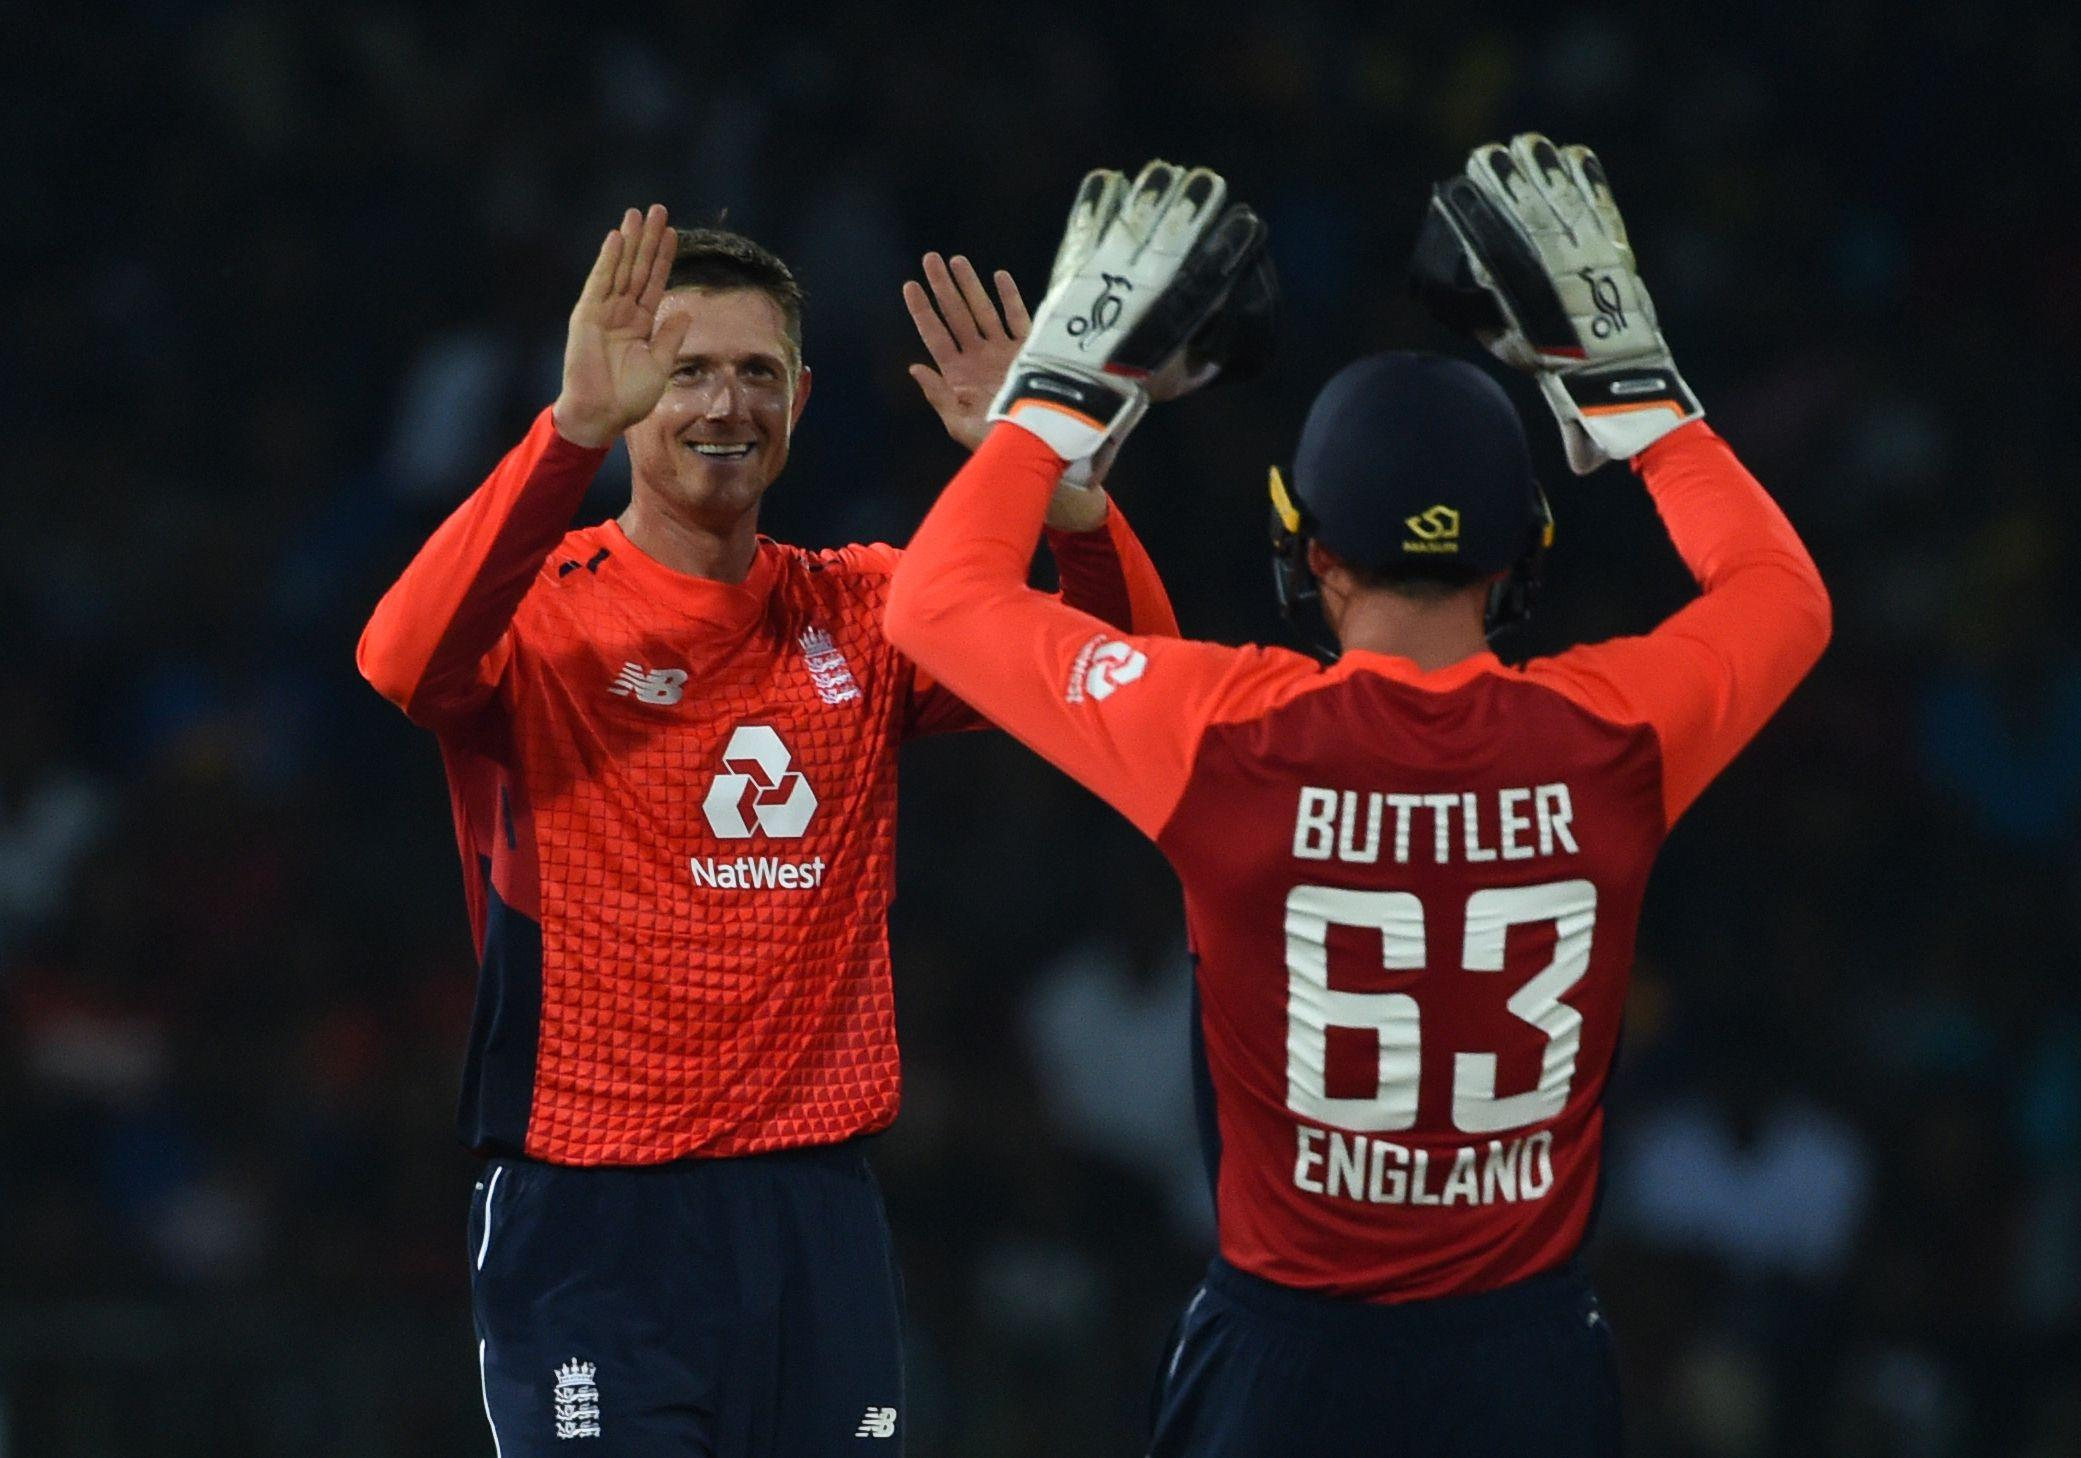 The Kent all-rounder was playing his first international match since February 2010